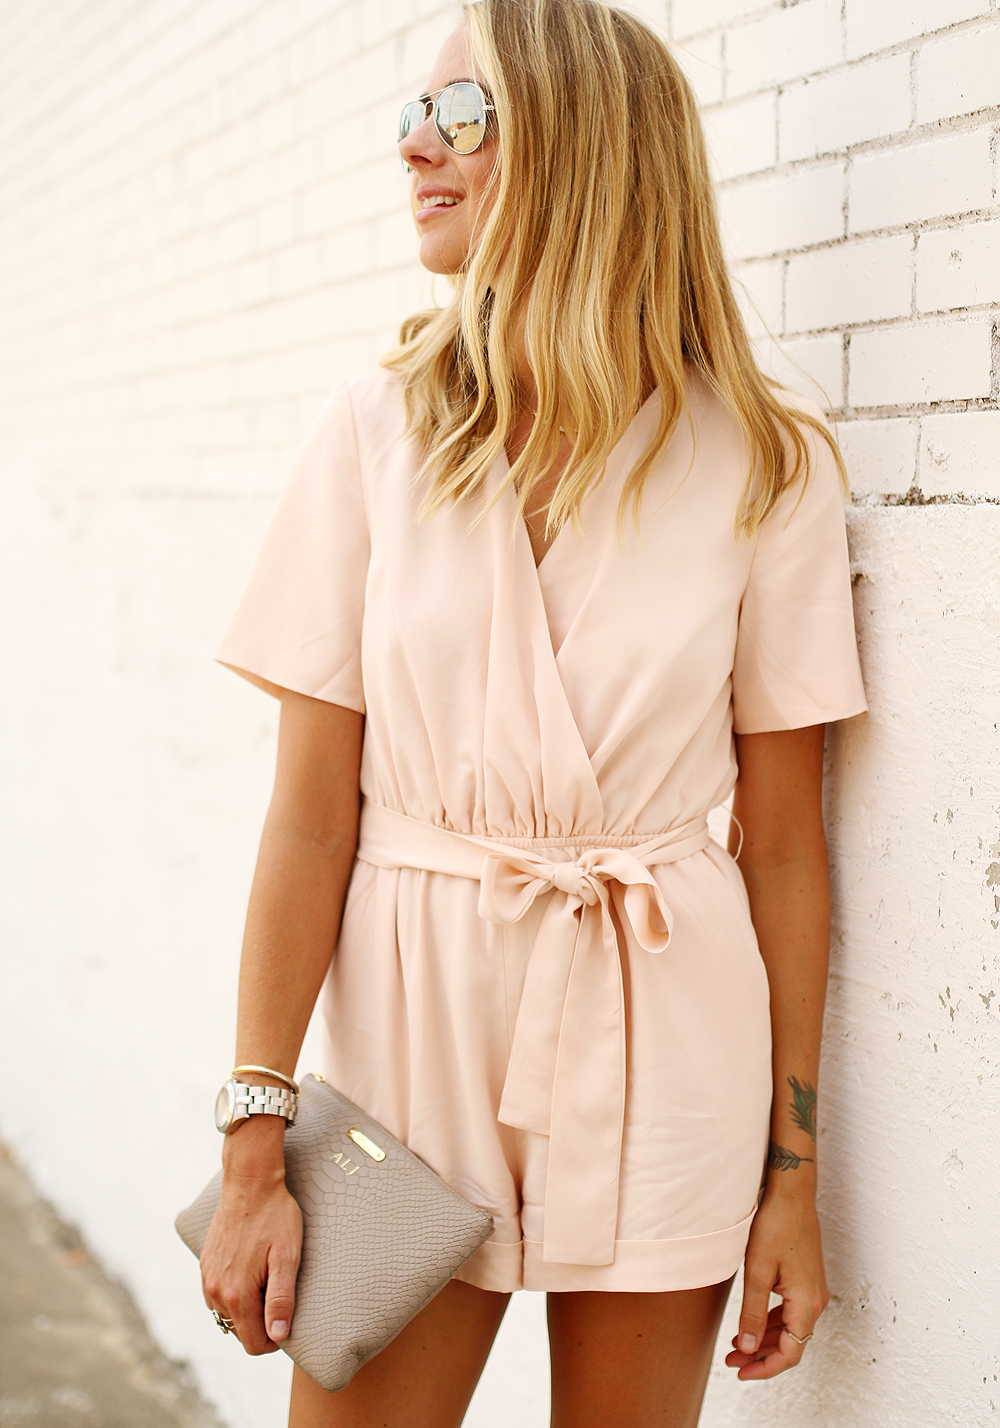 fashion-jackson-finders-keepers-pink-rewind-playsuit-romper-gigi-new-york-clutch-ray-ban-aviator-sunglasses